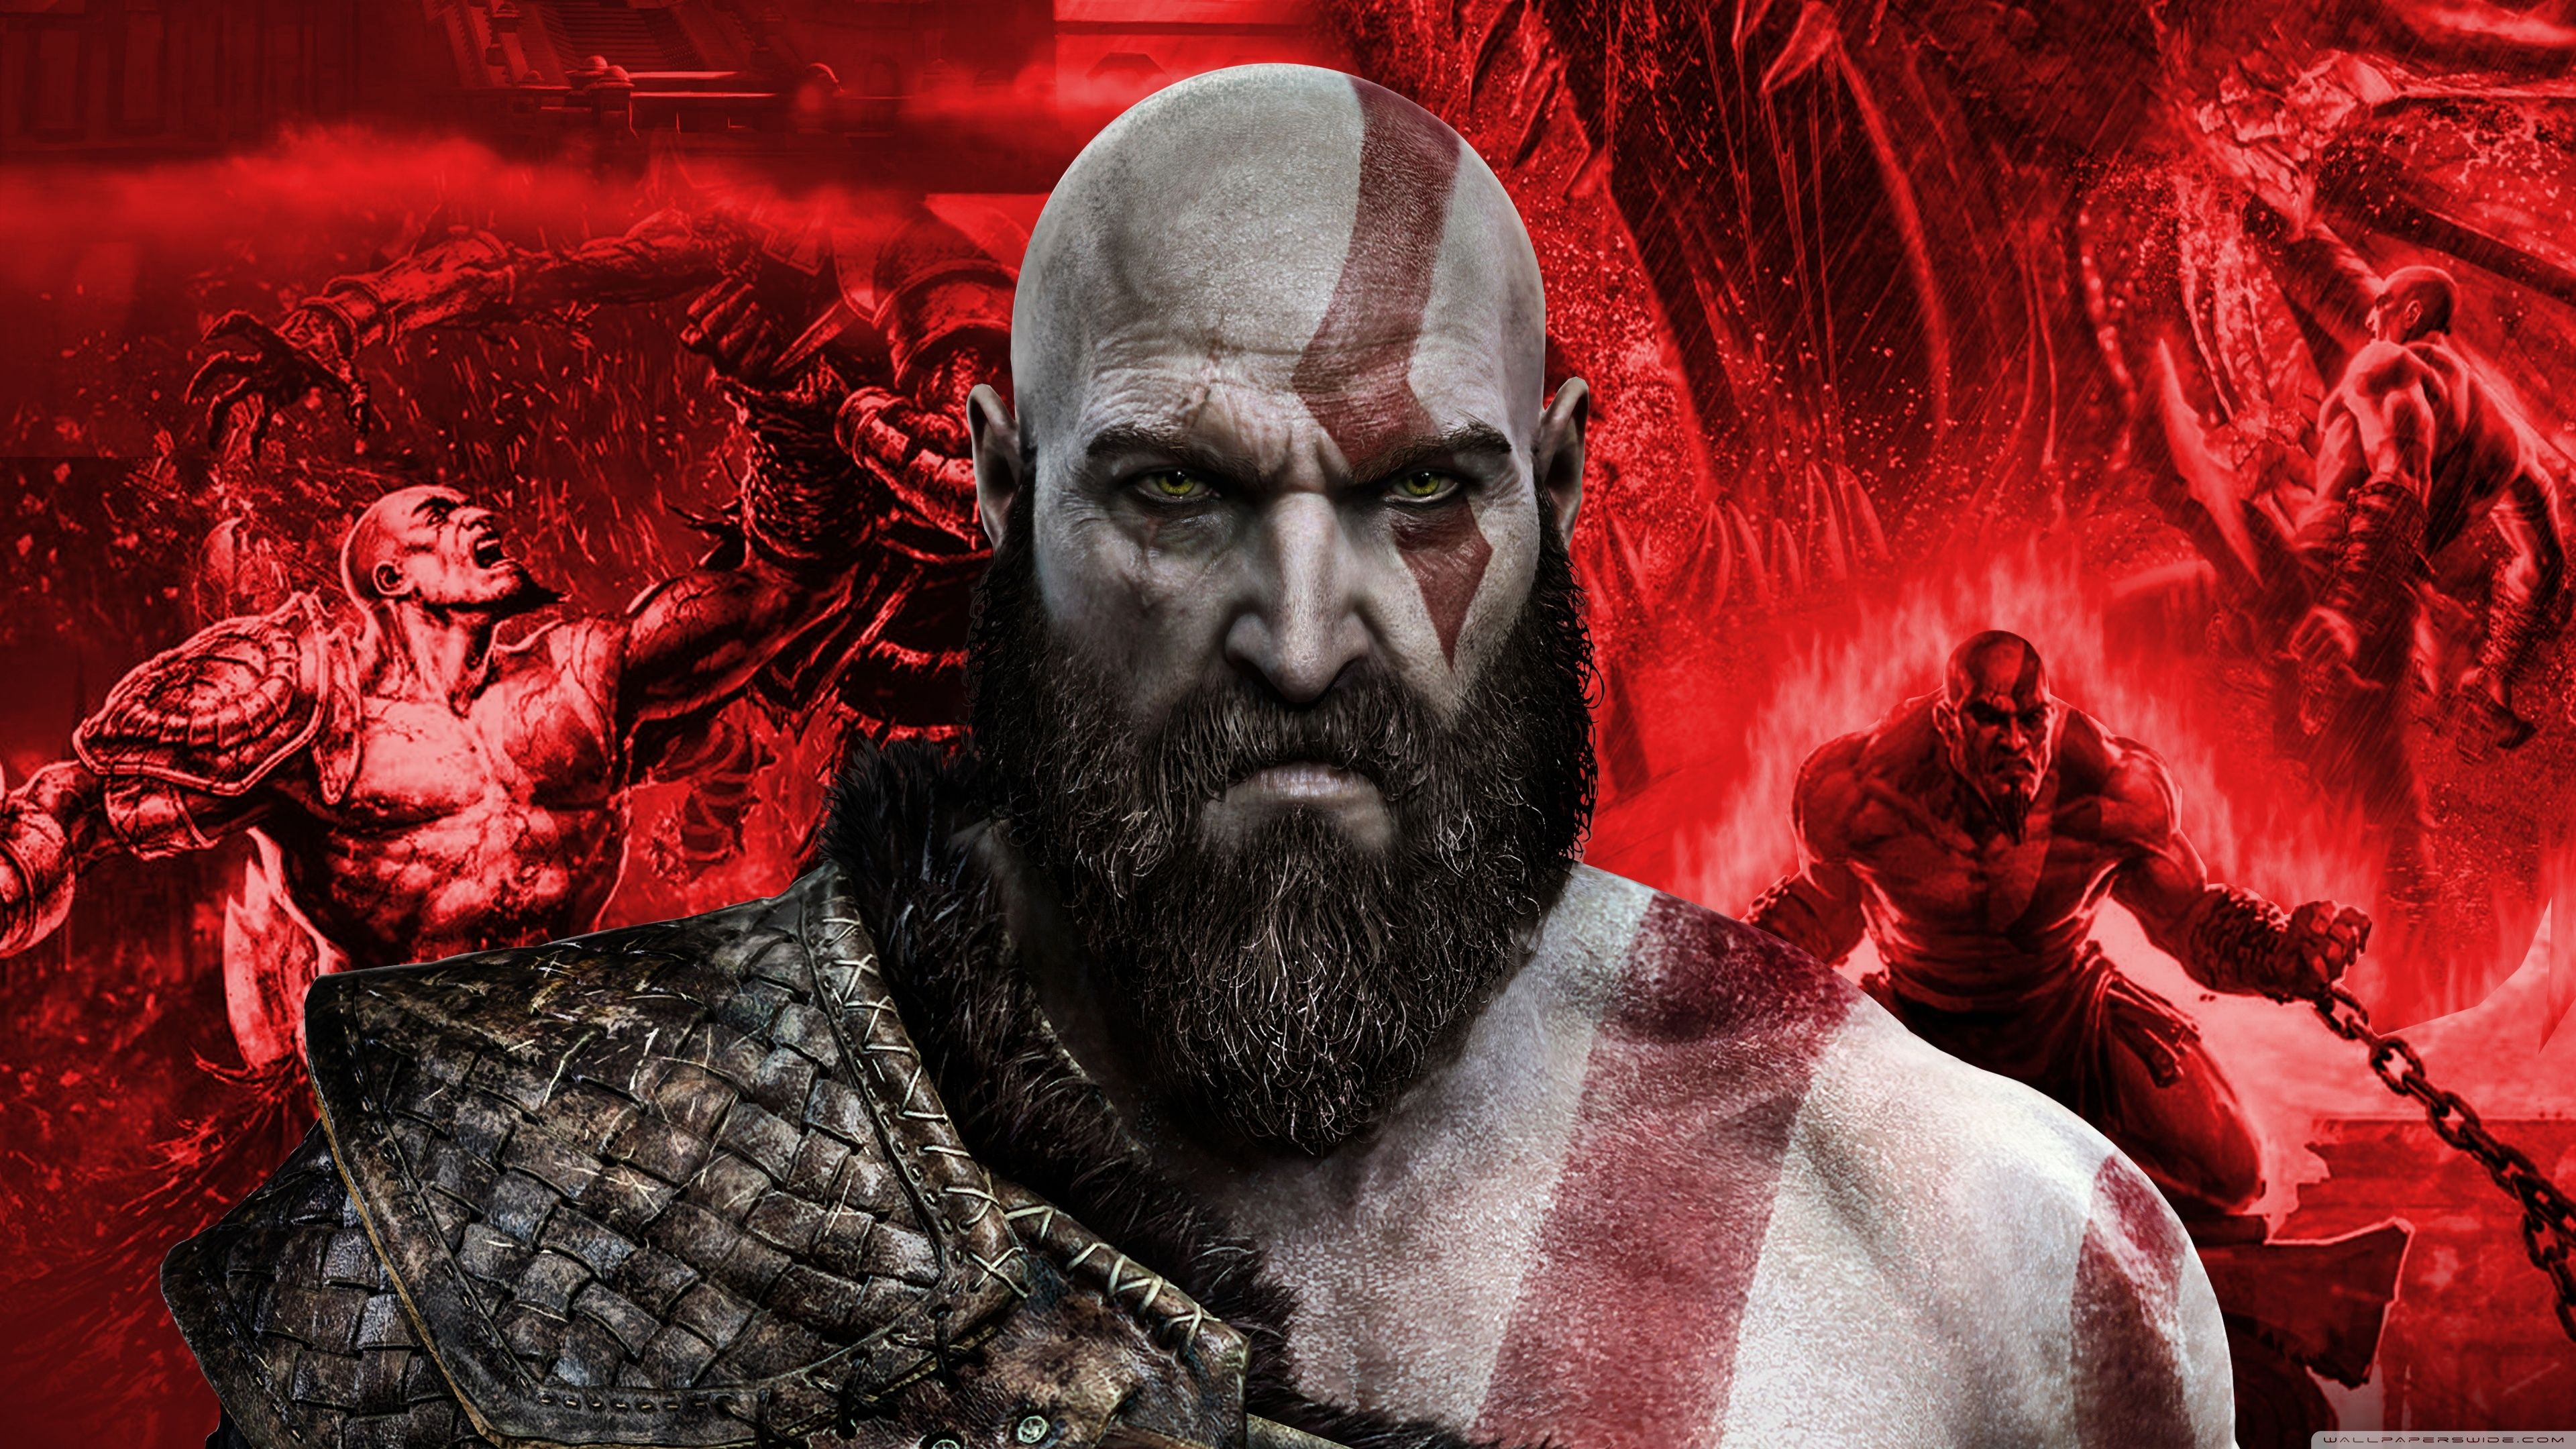 Best Of Kratos 4k Hd Desktop Wallpaper For 4k Ultra Hd God